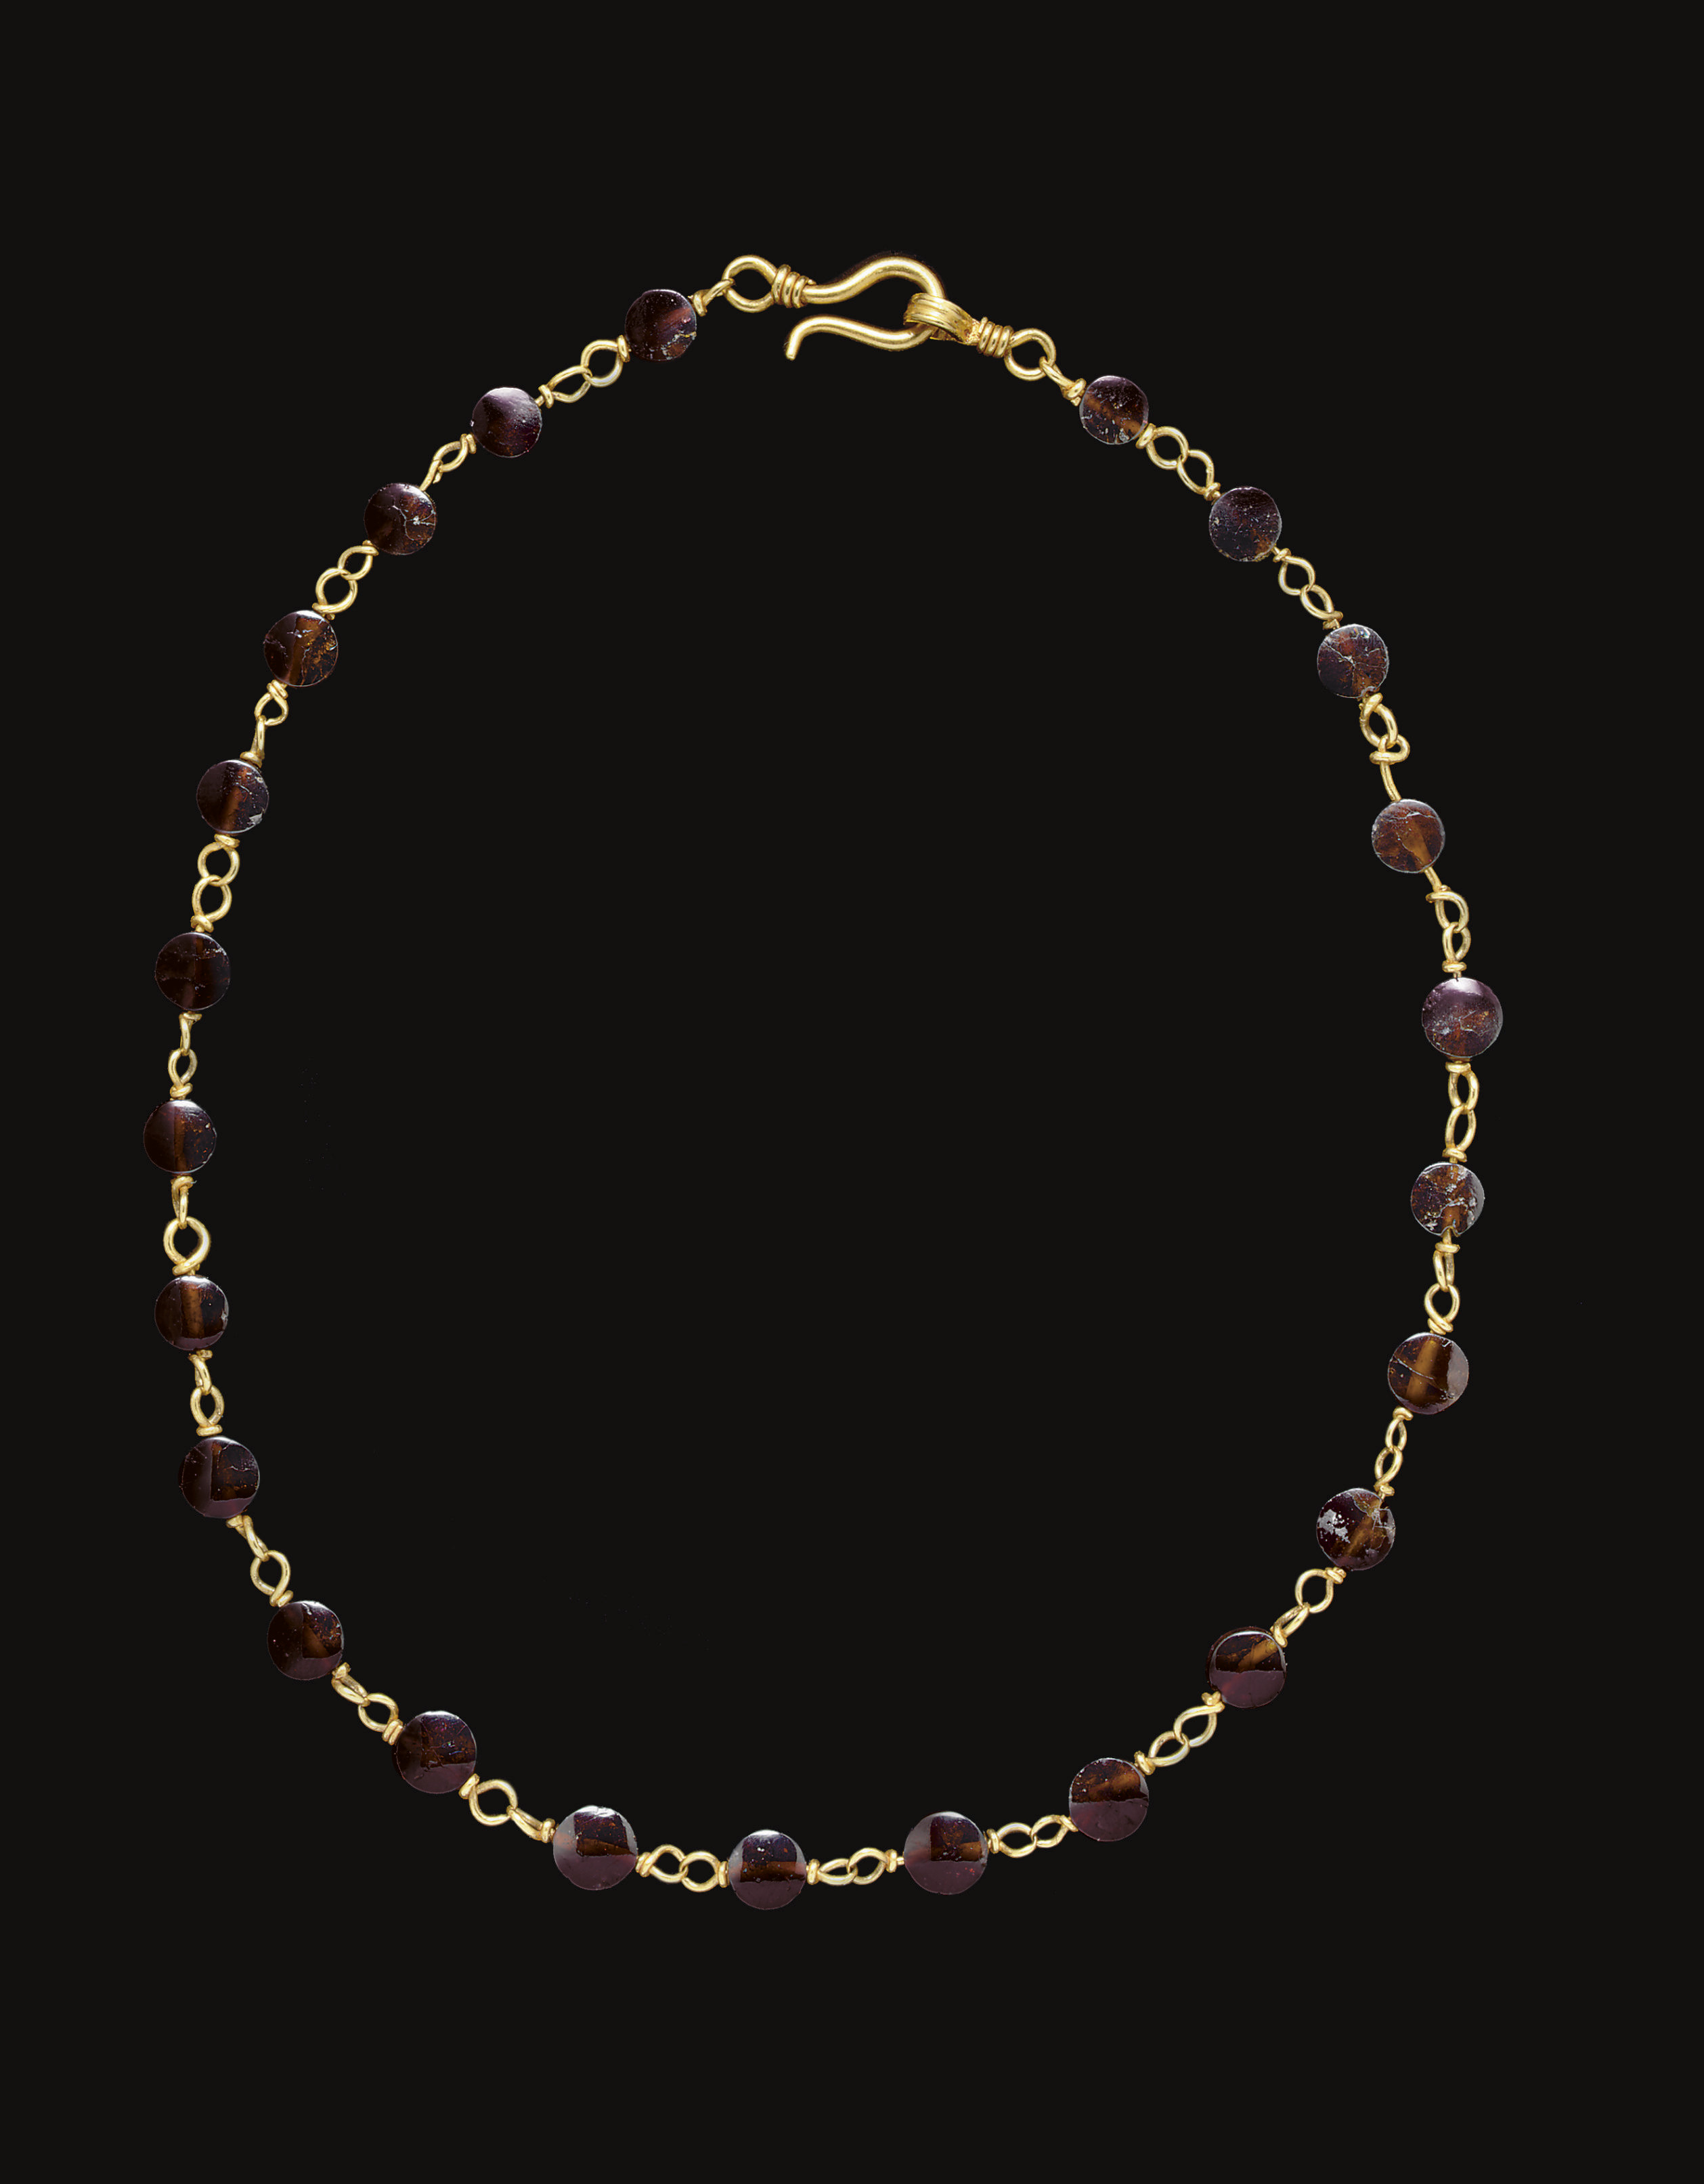 A ROMAN GOLD AND GARNET NECKLACE